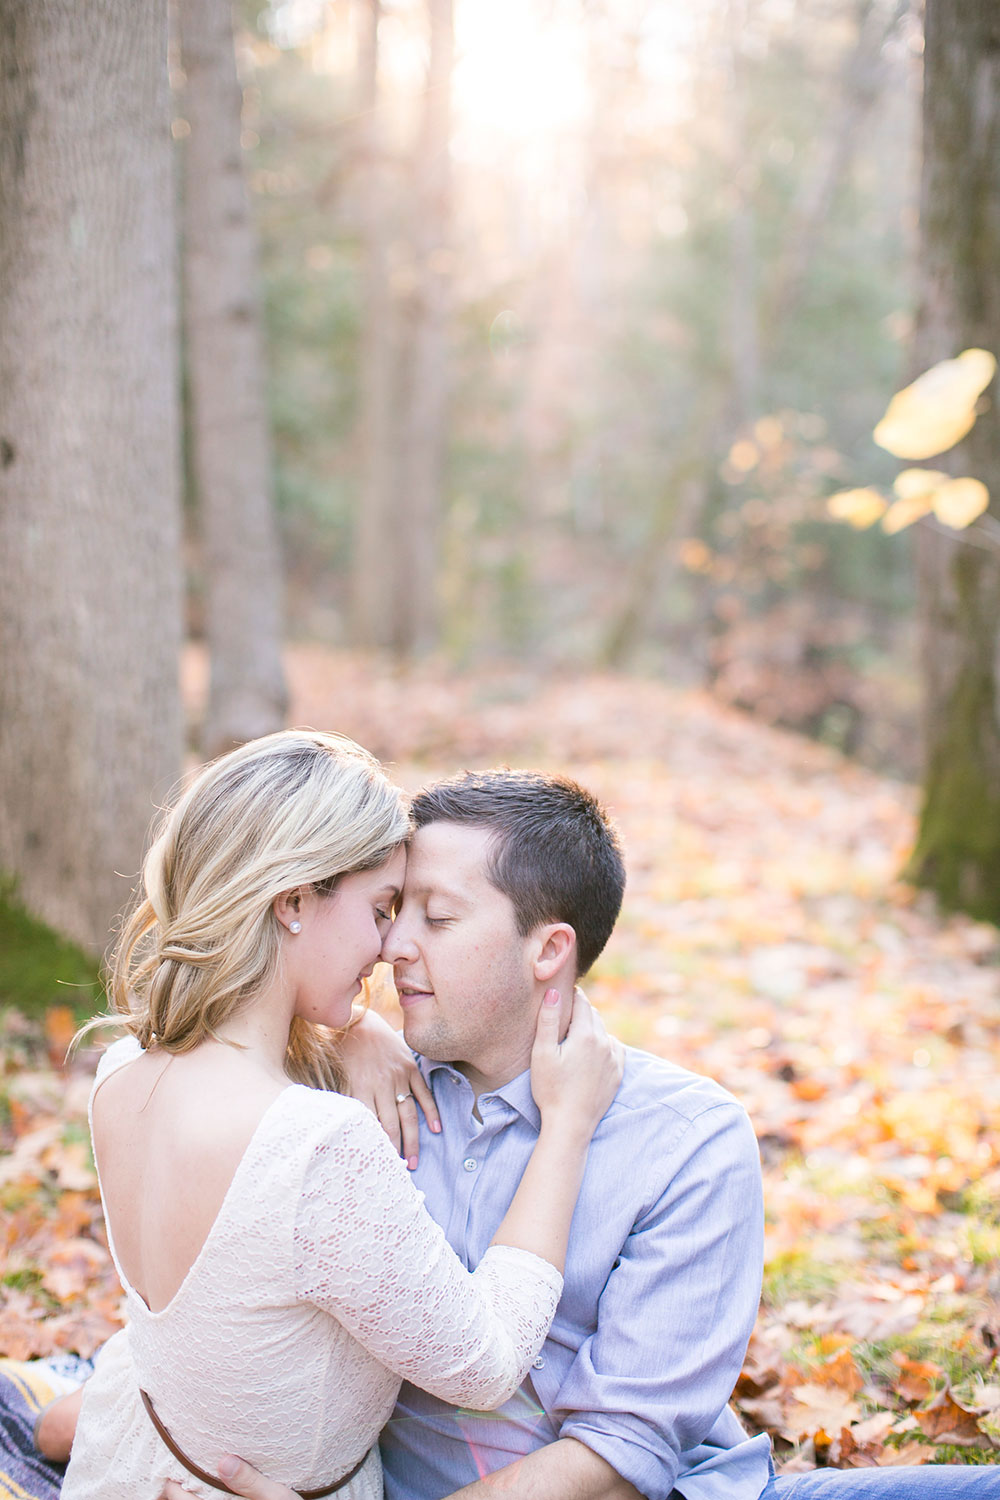 Albion-Hills-Conservation-Park-engagement-session-caledon-photo-by-philosophy-studios-eva-derrick-photography-007.jpg